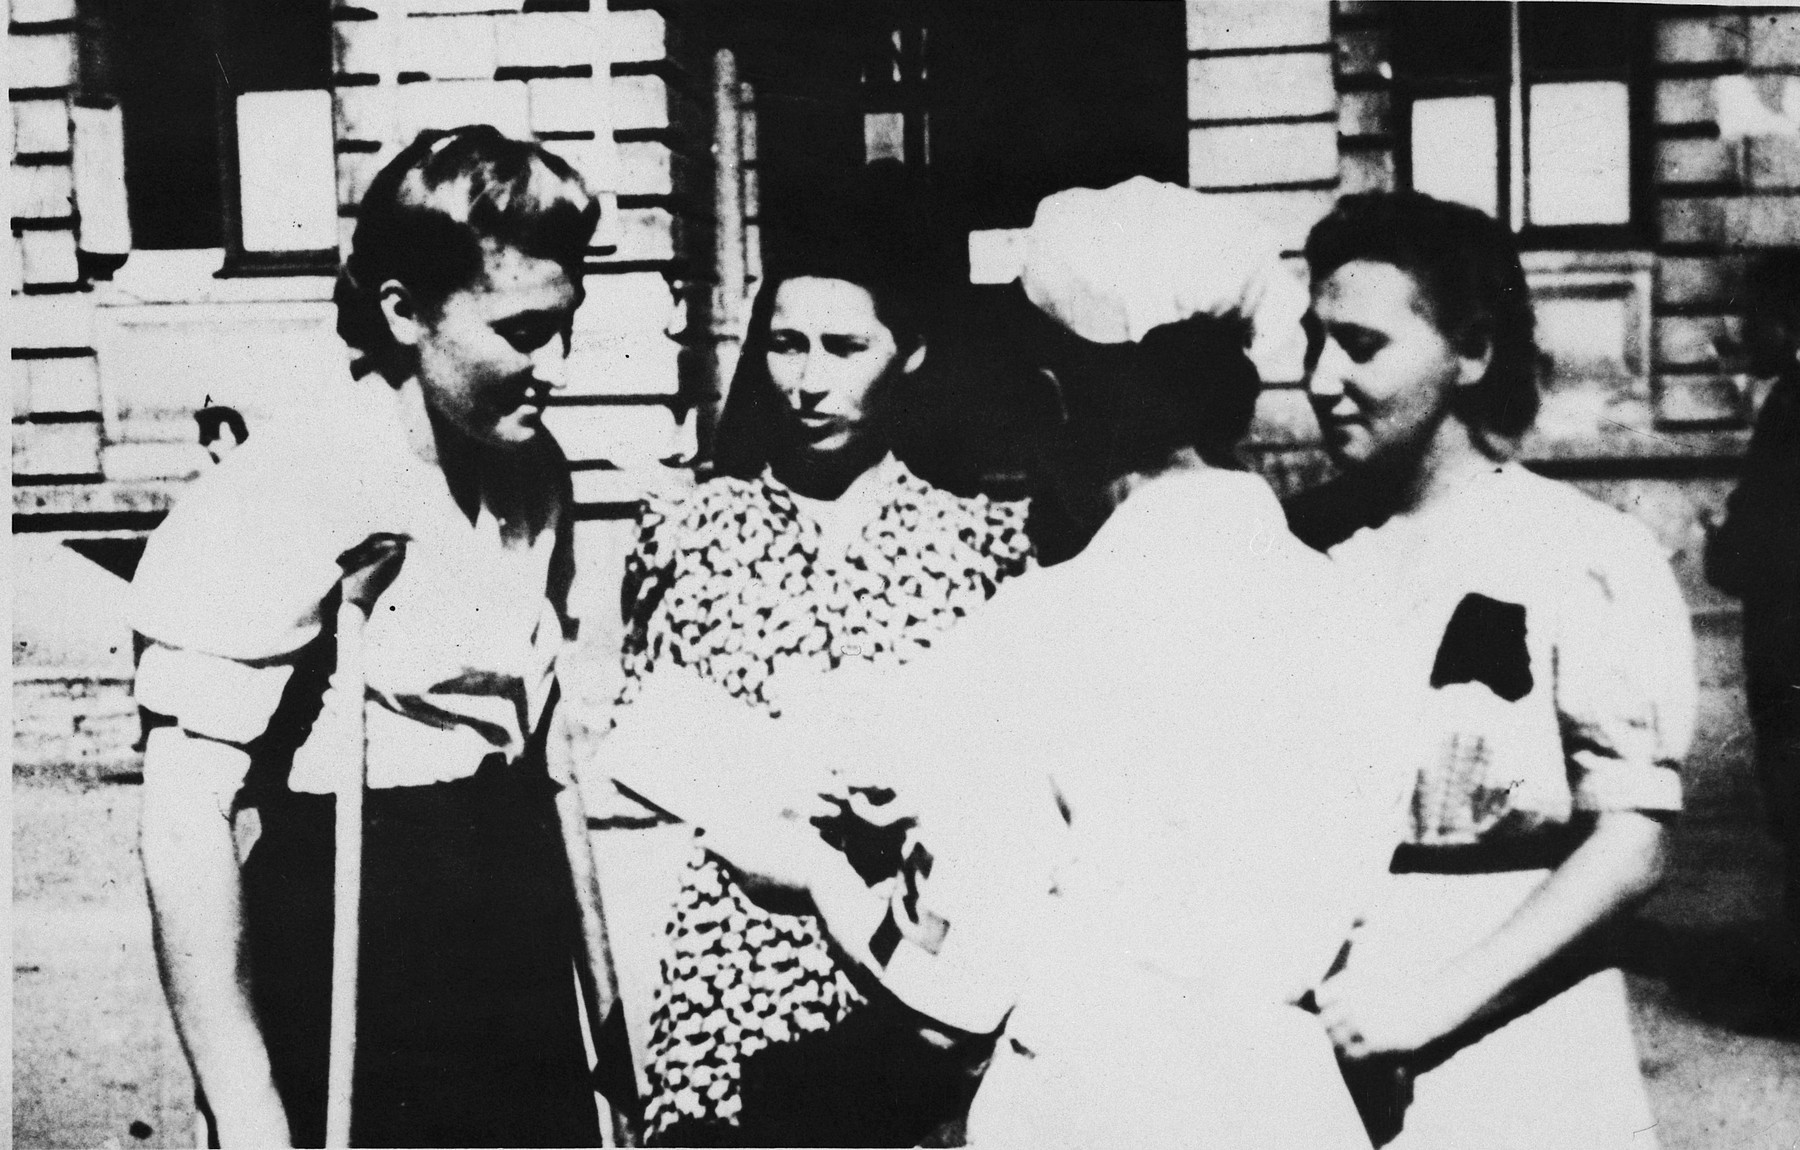 A nurse converses with three Polish female survivors of the Ravensbrueck concentration camp who had been subjected to medical experimentation during their imprisonment.  Pictured from left to right are: Maria Kusmierczuk, Wladislawa Karolewska and Jadwiga Dzido.